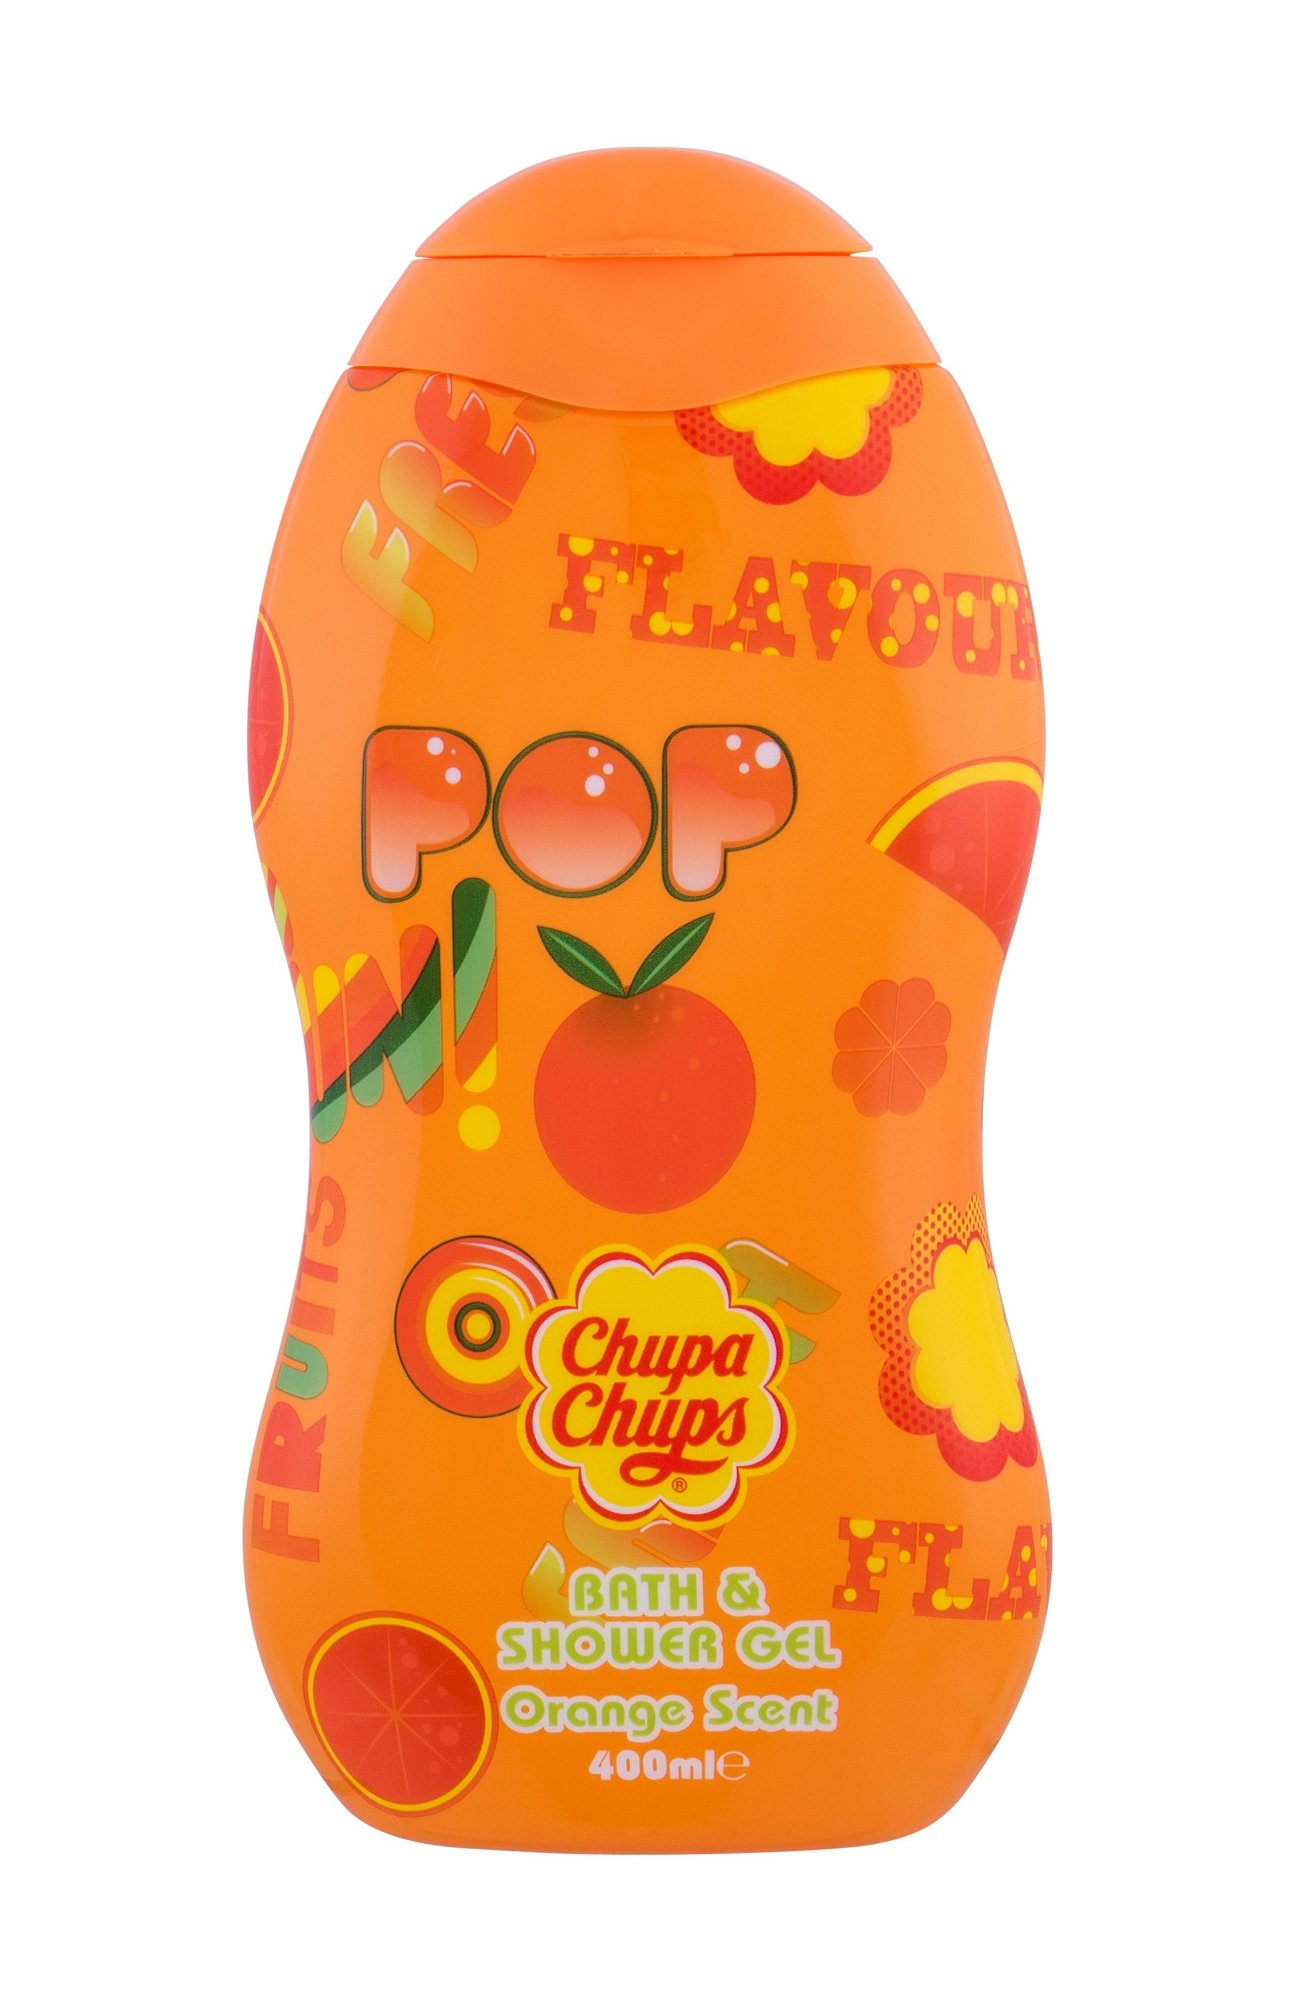 Chupa Chups Orange Scent Shower Gel 400ml